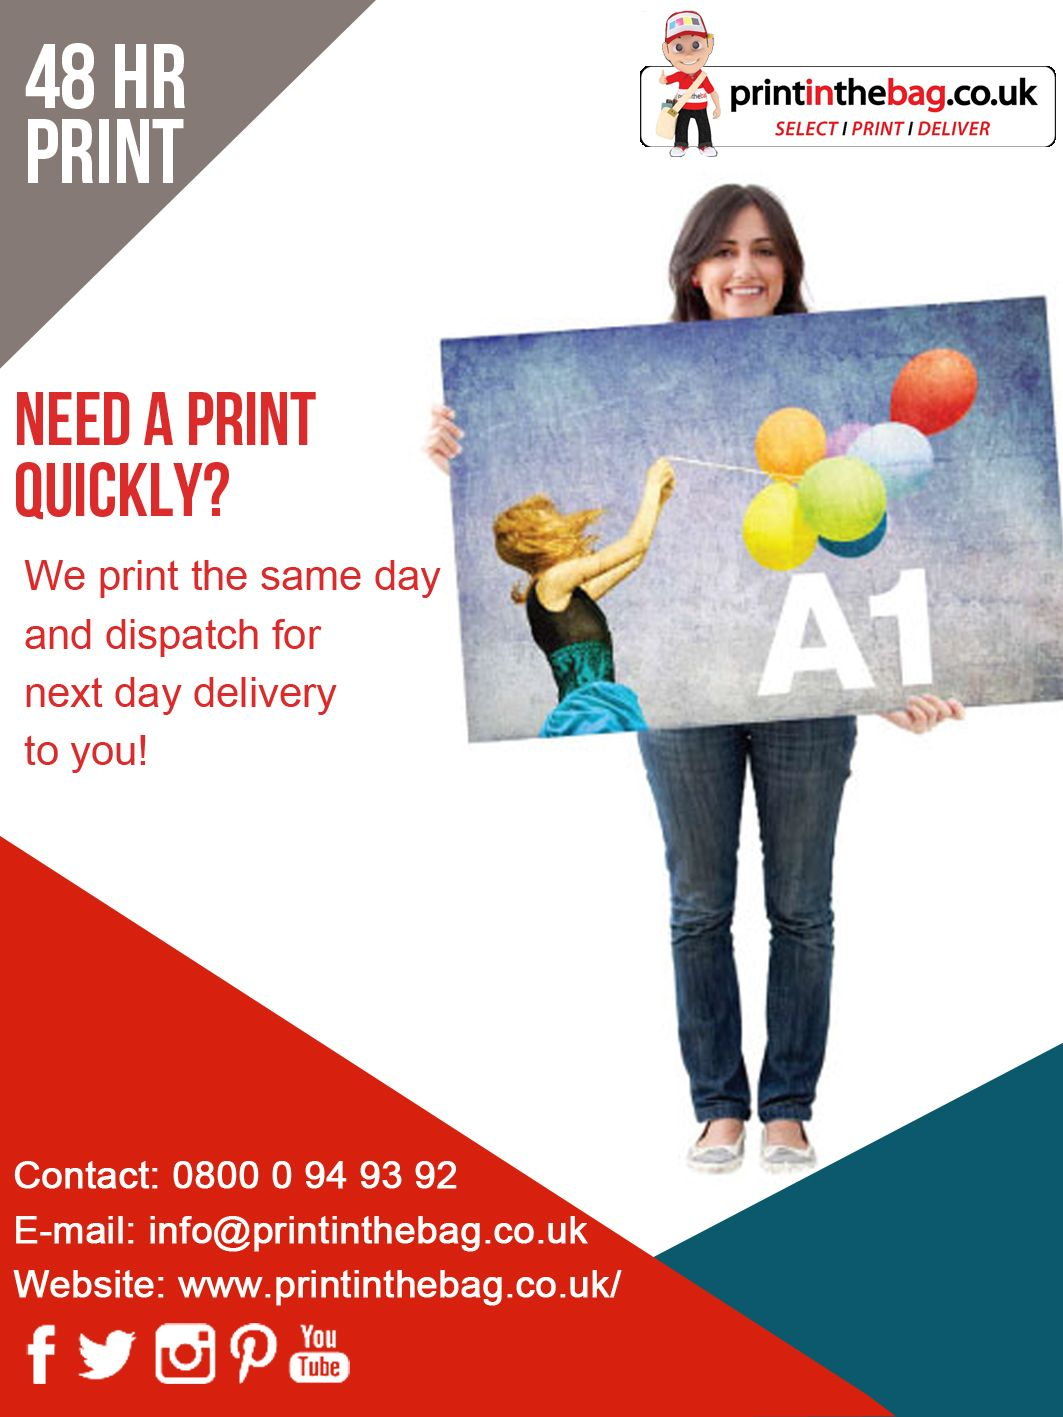 We Print On The Same Day And Dispatch For The Next Day Delivery To You Printinthebag Select Print Deliver Printing Business Cards Print Printing Services